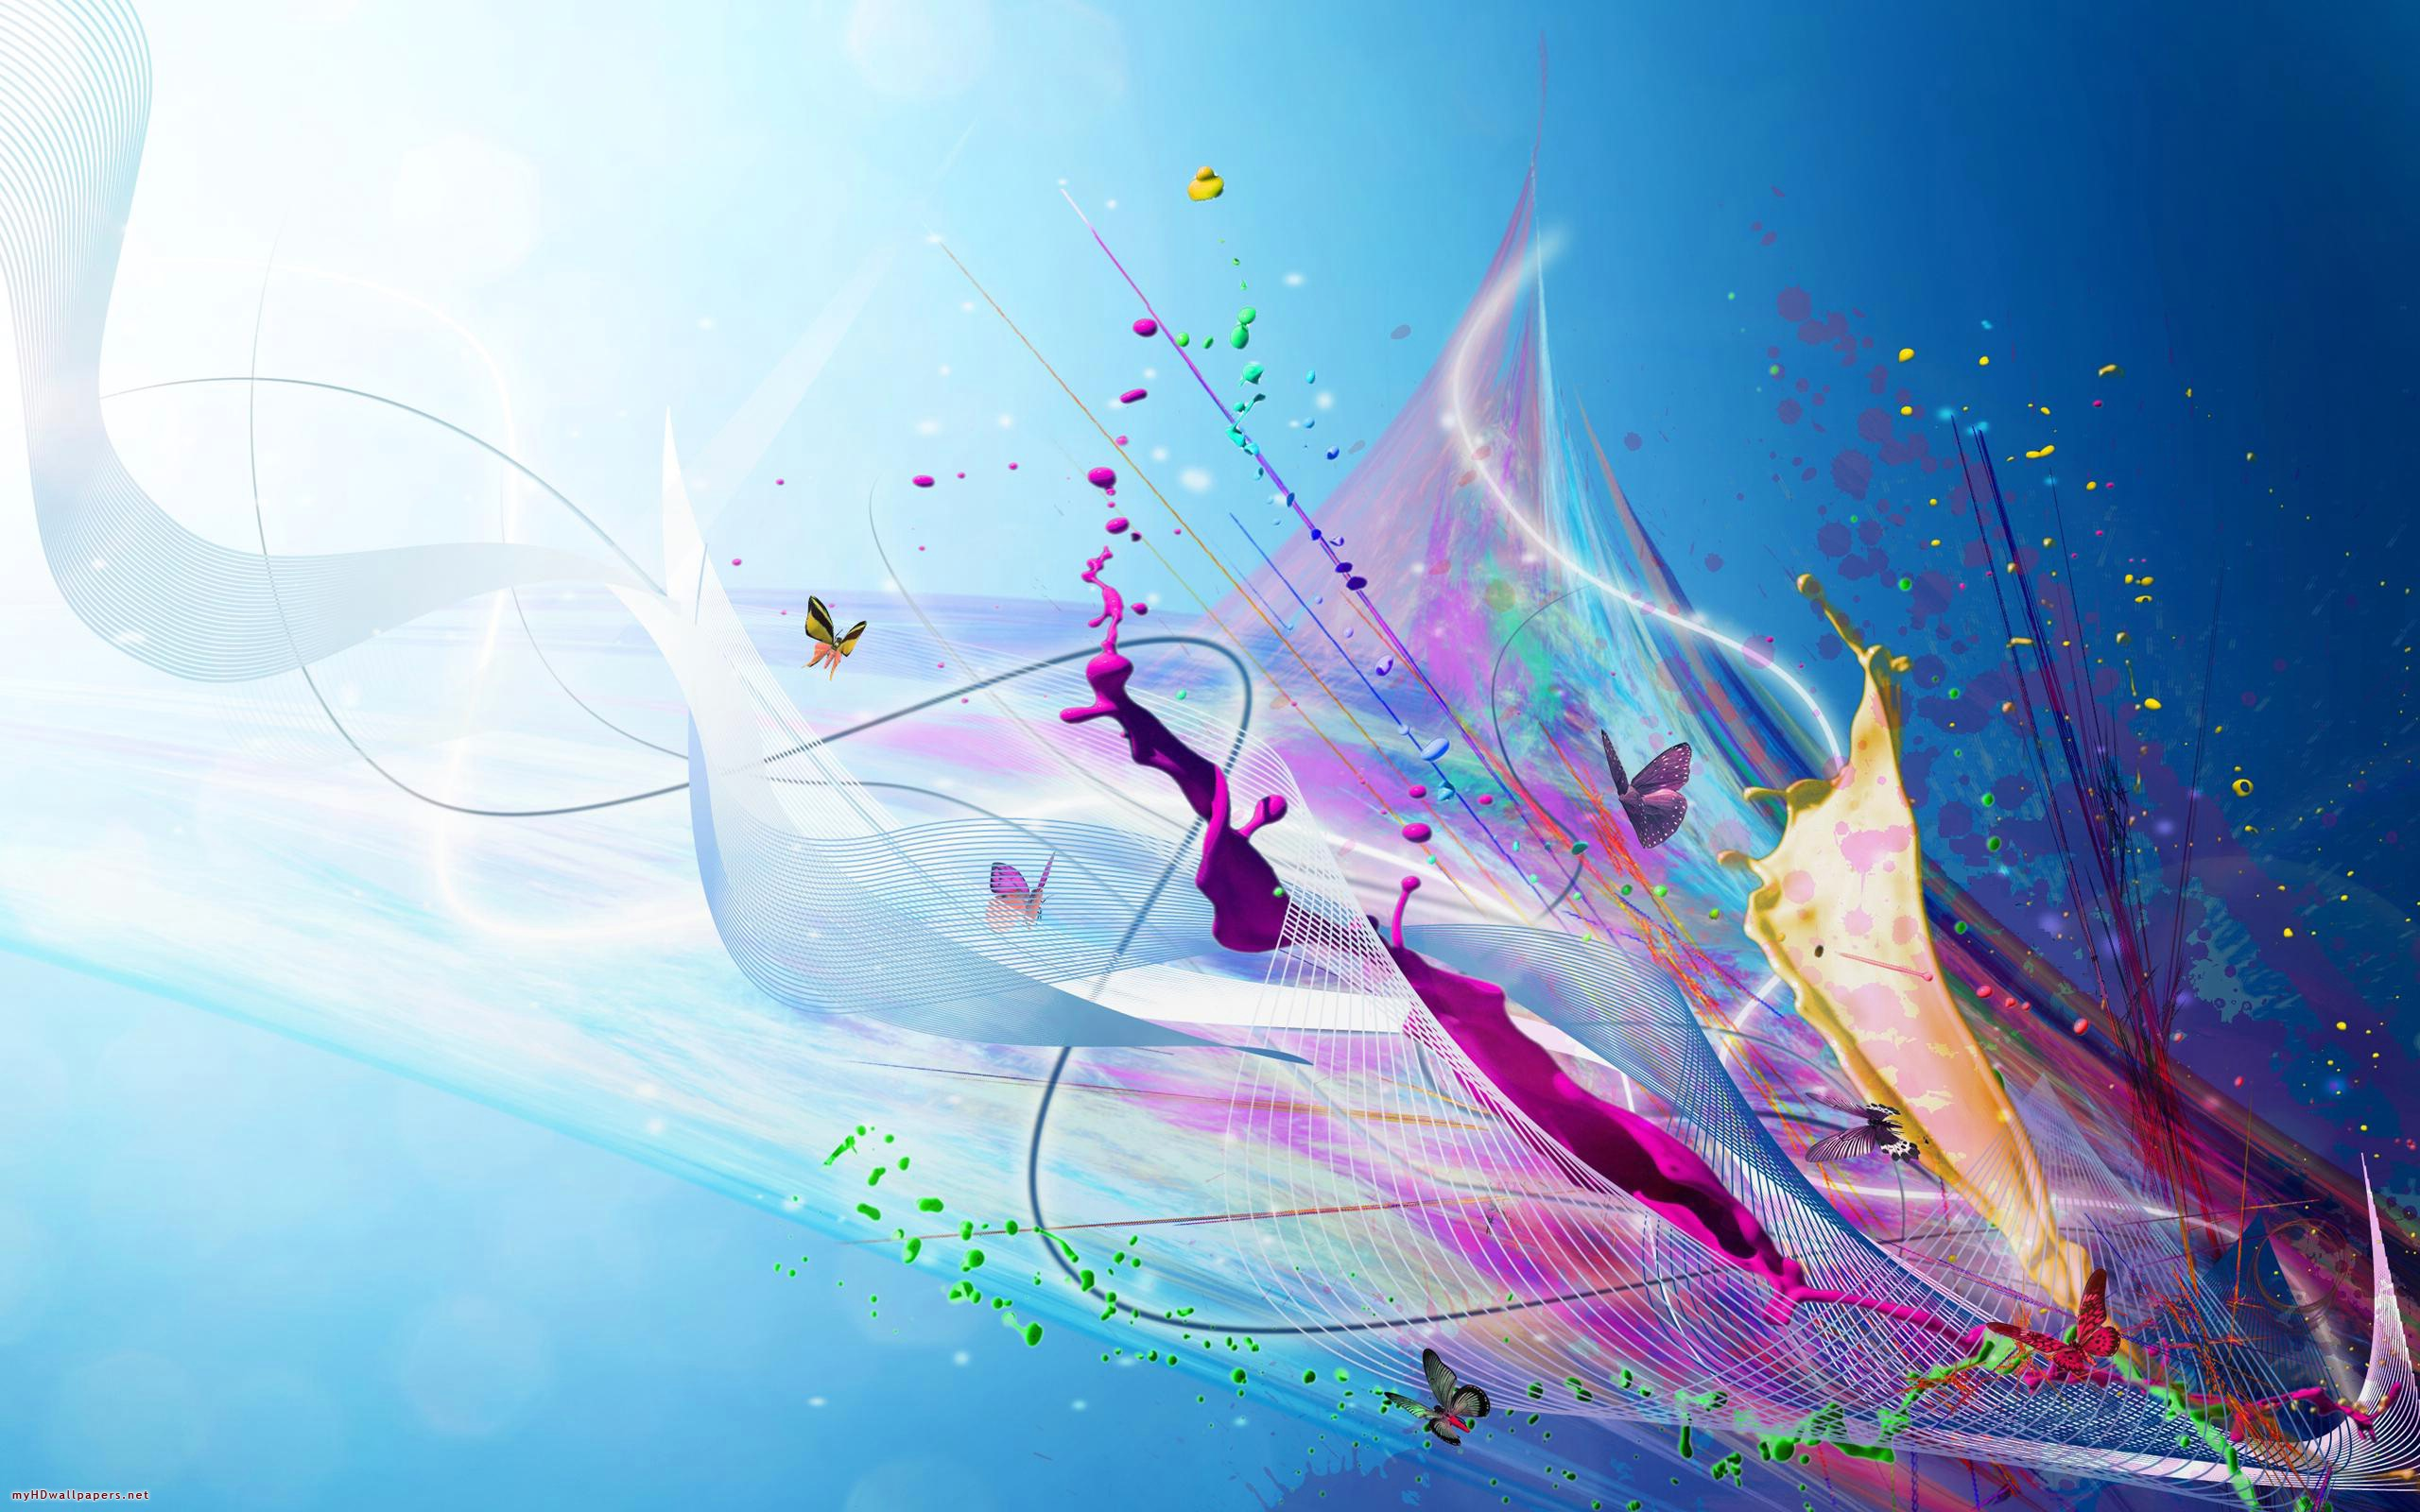 Awesome background pictures wallpapersafari - Abstract Hd Wallpapers 1080p Wallpapersafari